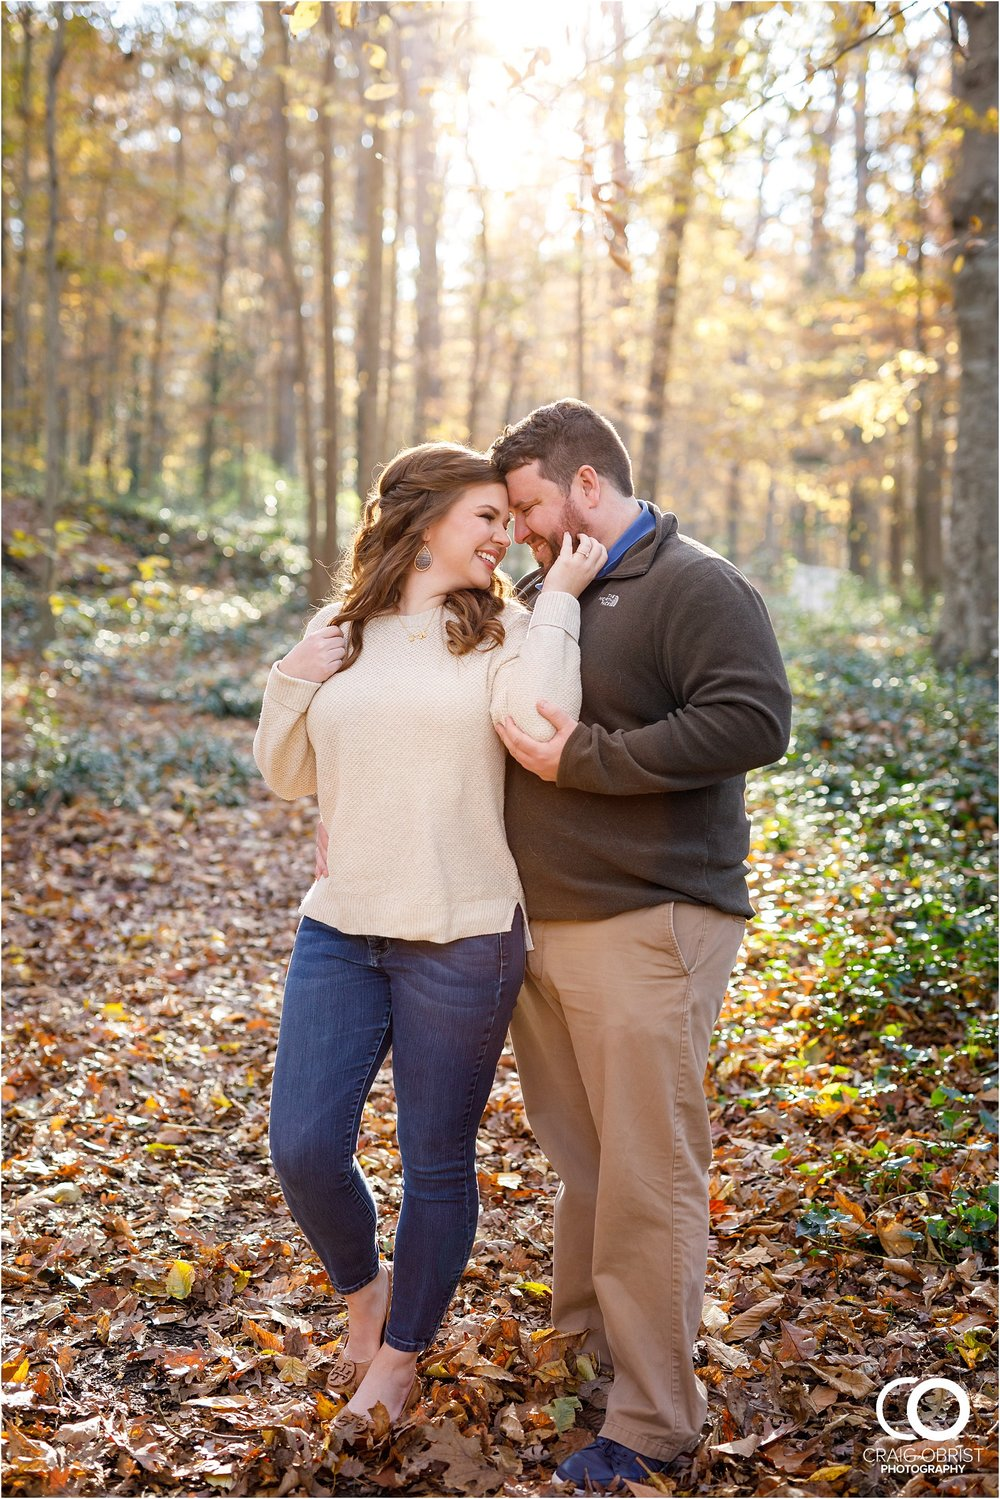 Cator Woolford Gardens Piedmont Park Engagement Portraits_0009.jpg